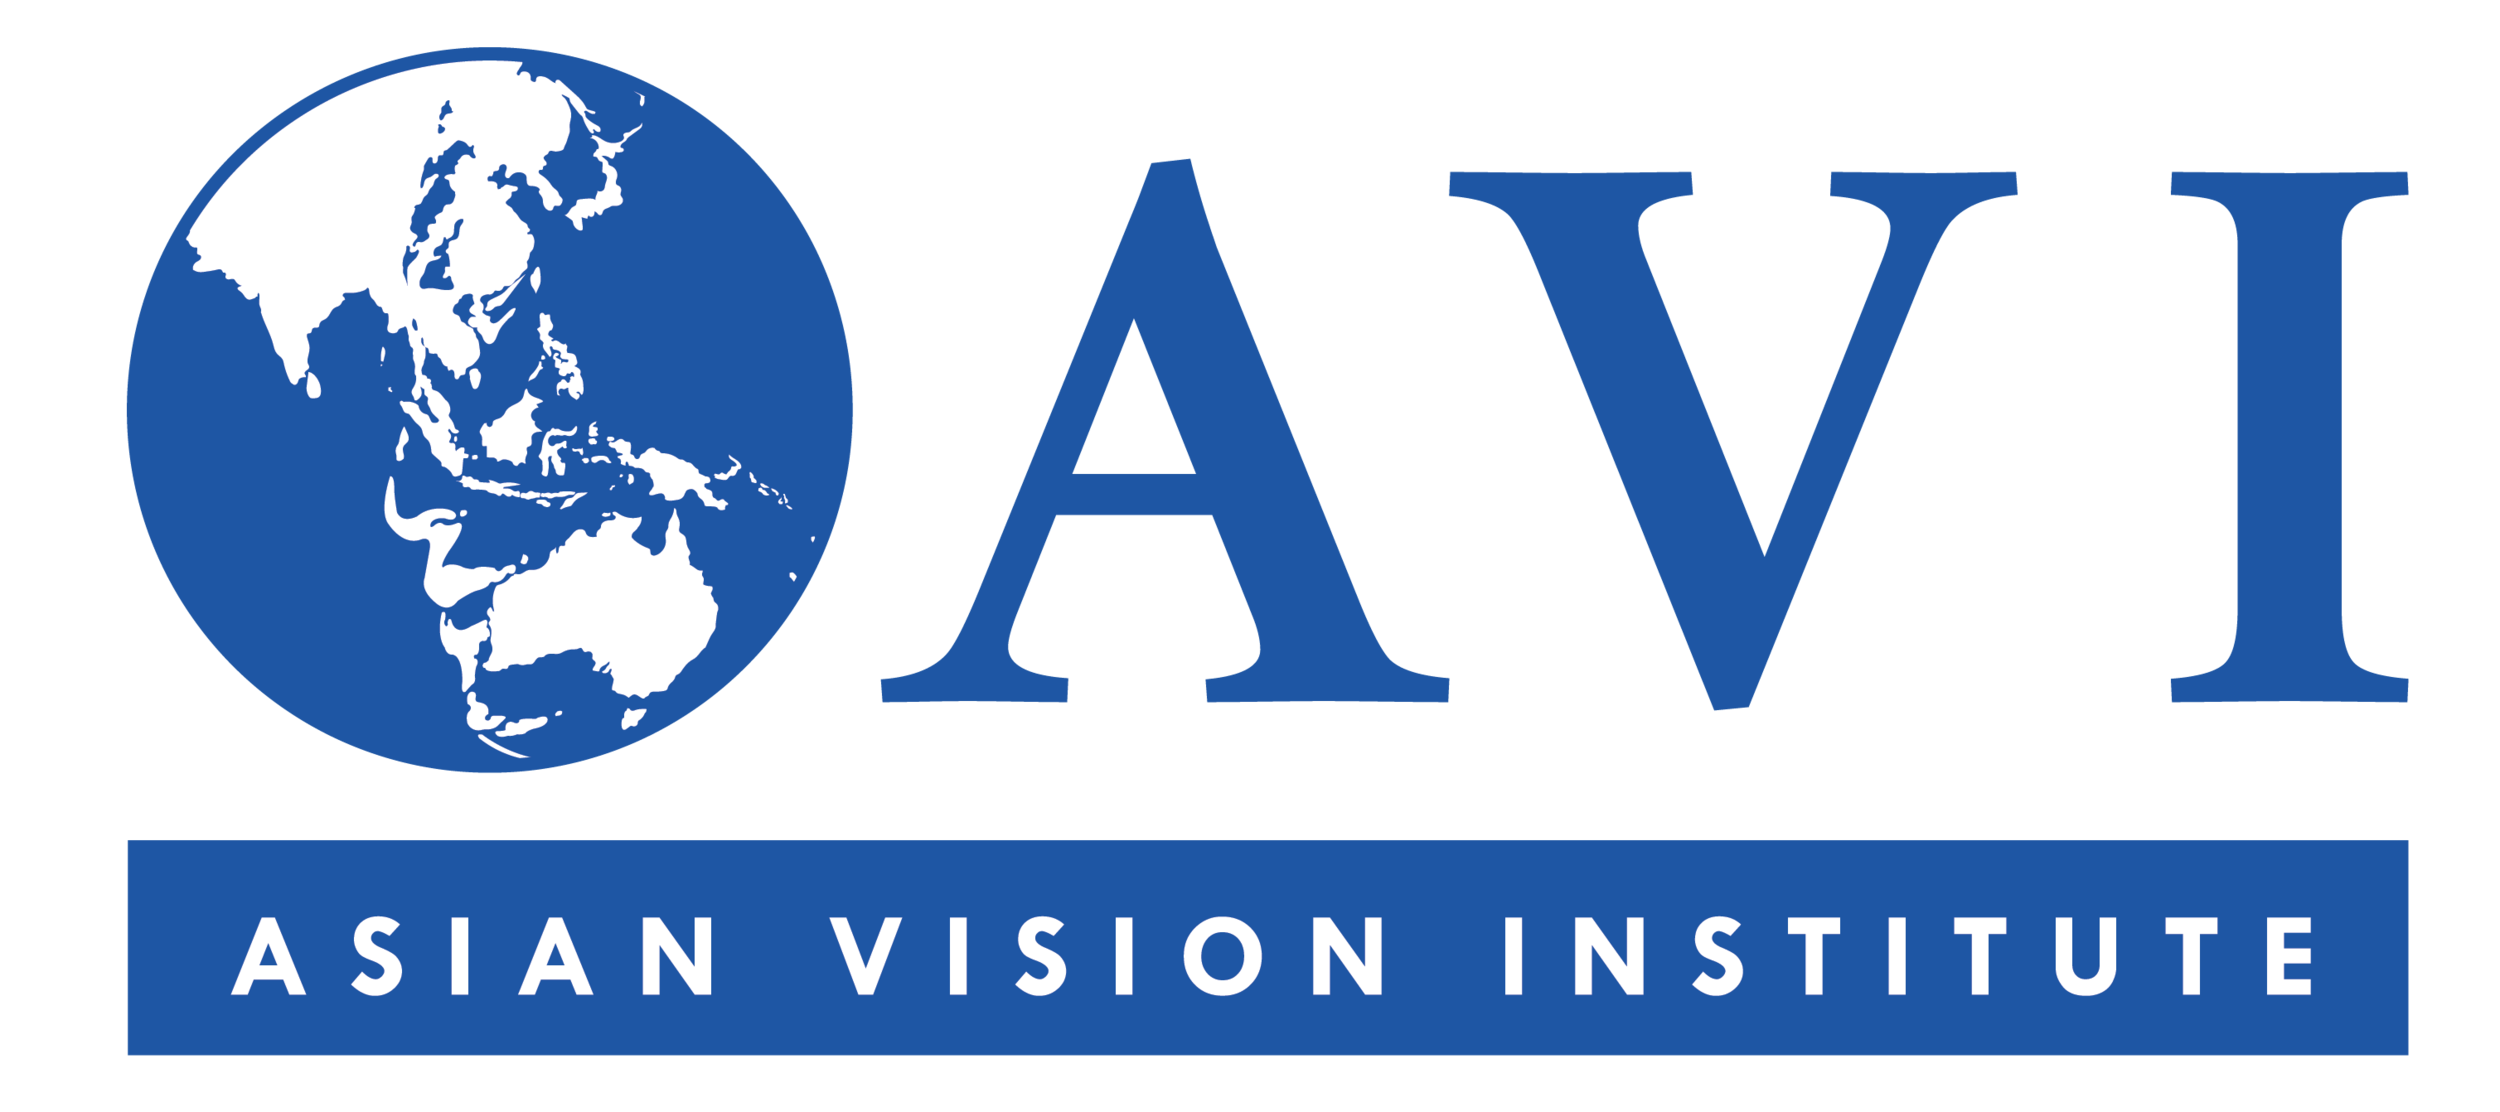 The Asian Vision Institute (AVI) is an independent think tank based in Phnom Penh, Cambodia. It aims to promote inclusive, adaptive and sustainable societies in Asia.